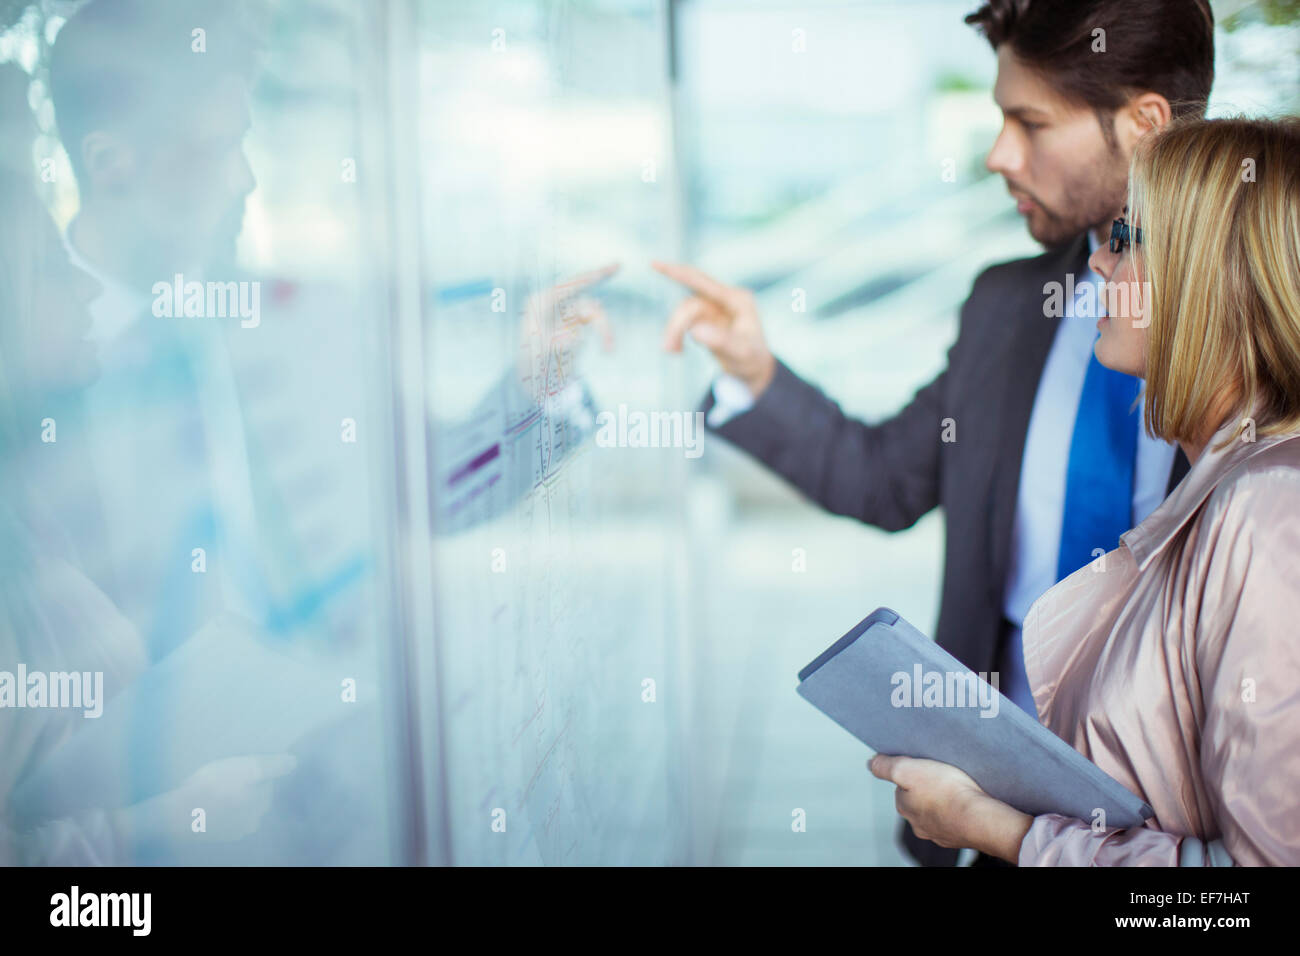 Business people reading transportation schedule at station - Stock Image